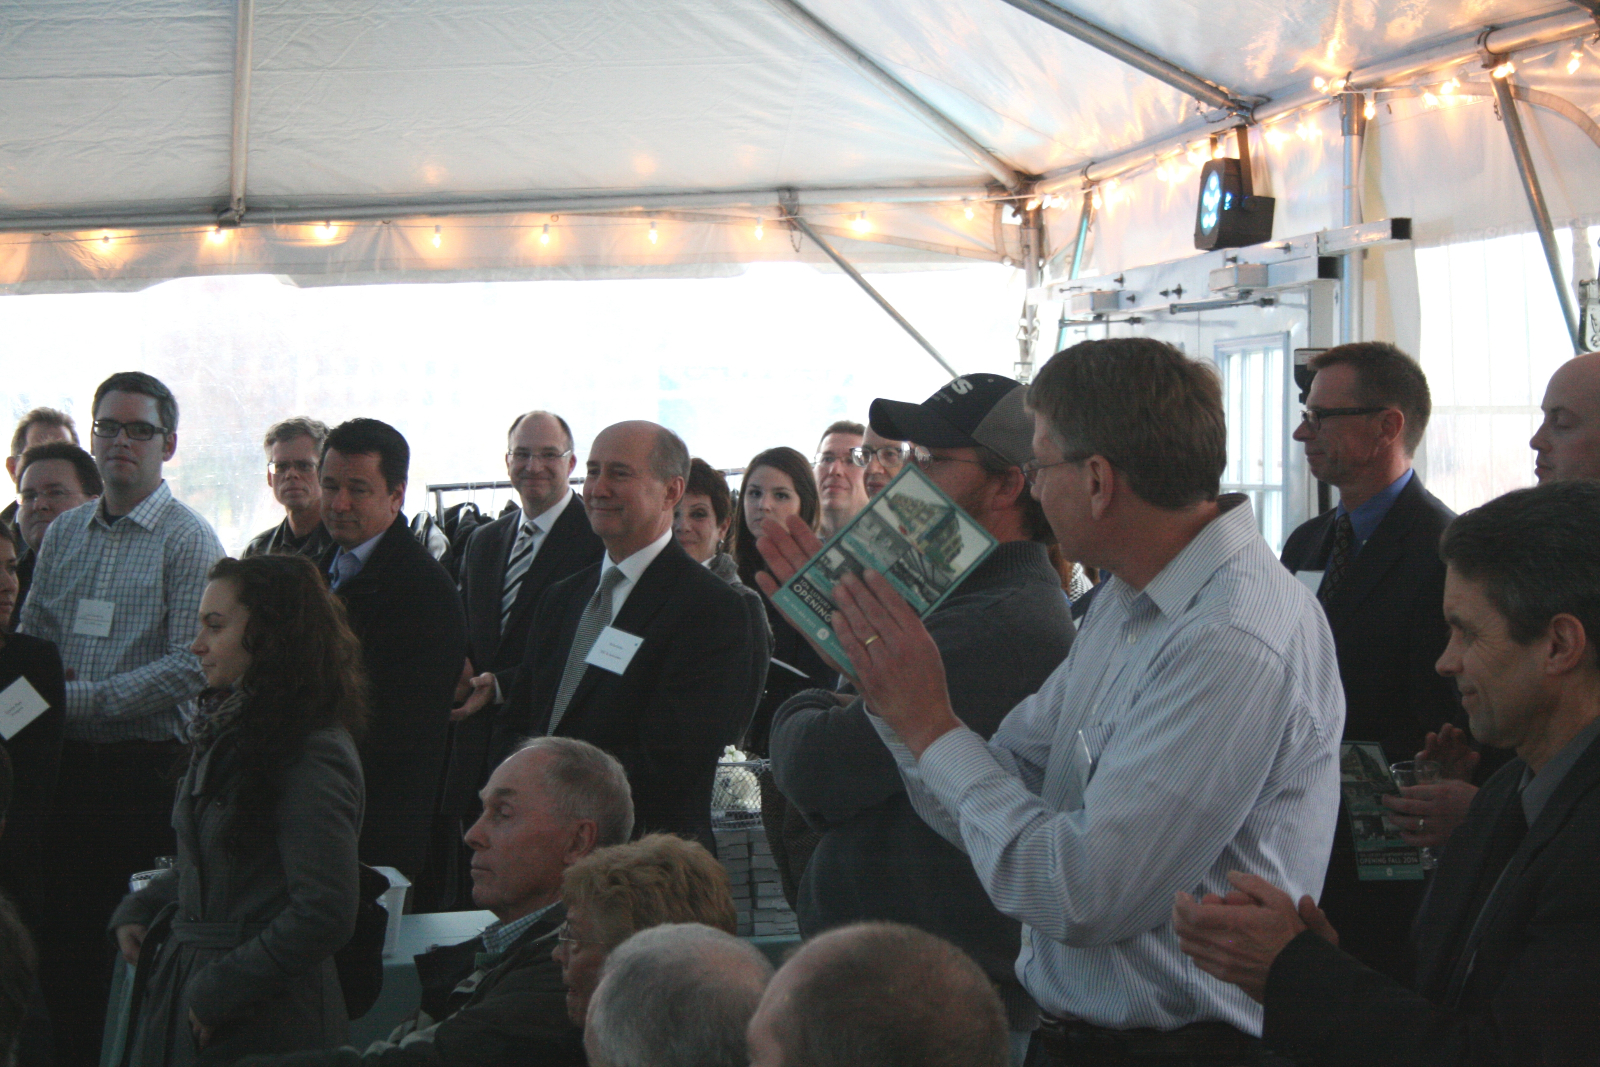 Richard Curto, of RSC & Associates, is thanked for initially startng the project.